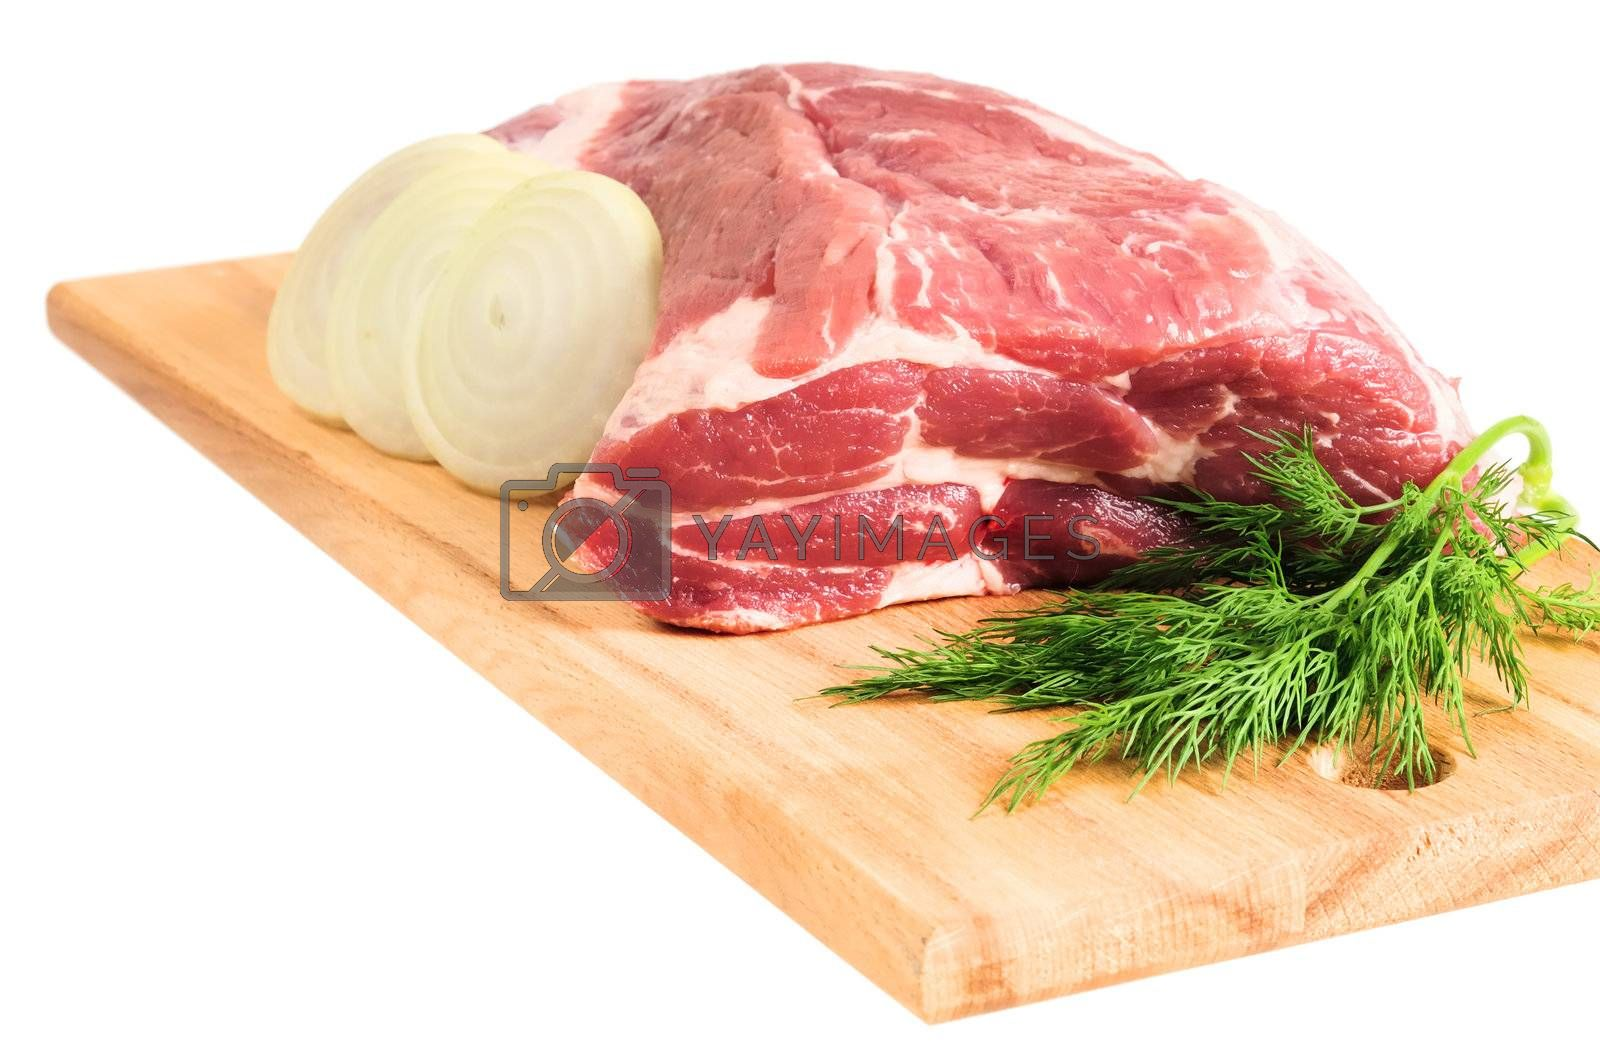 Royalty free image of Piece of pork for roasting by grauvision